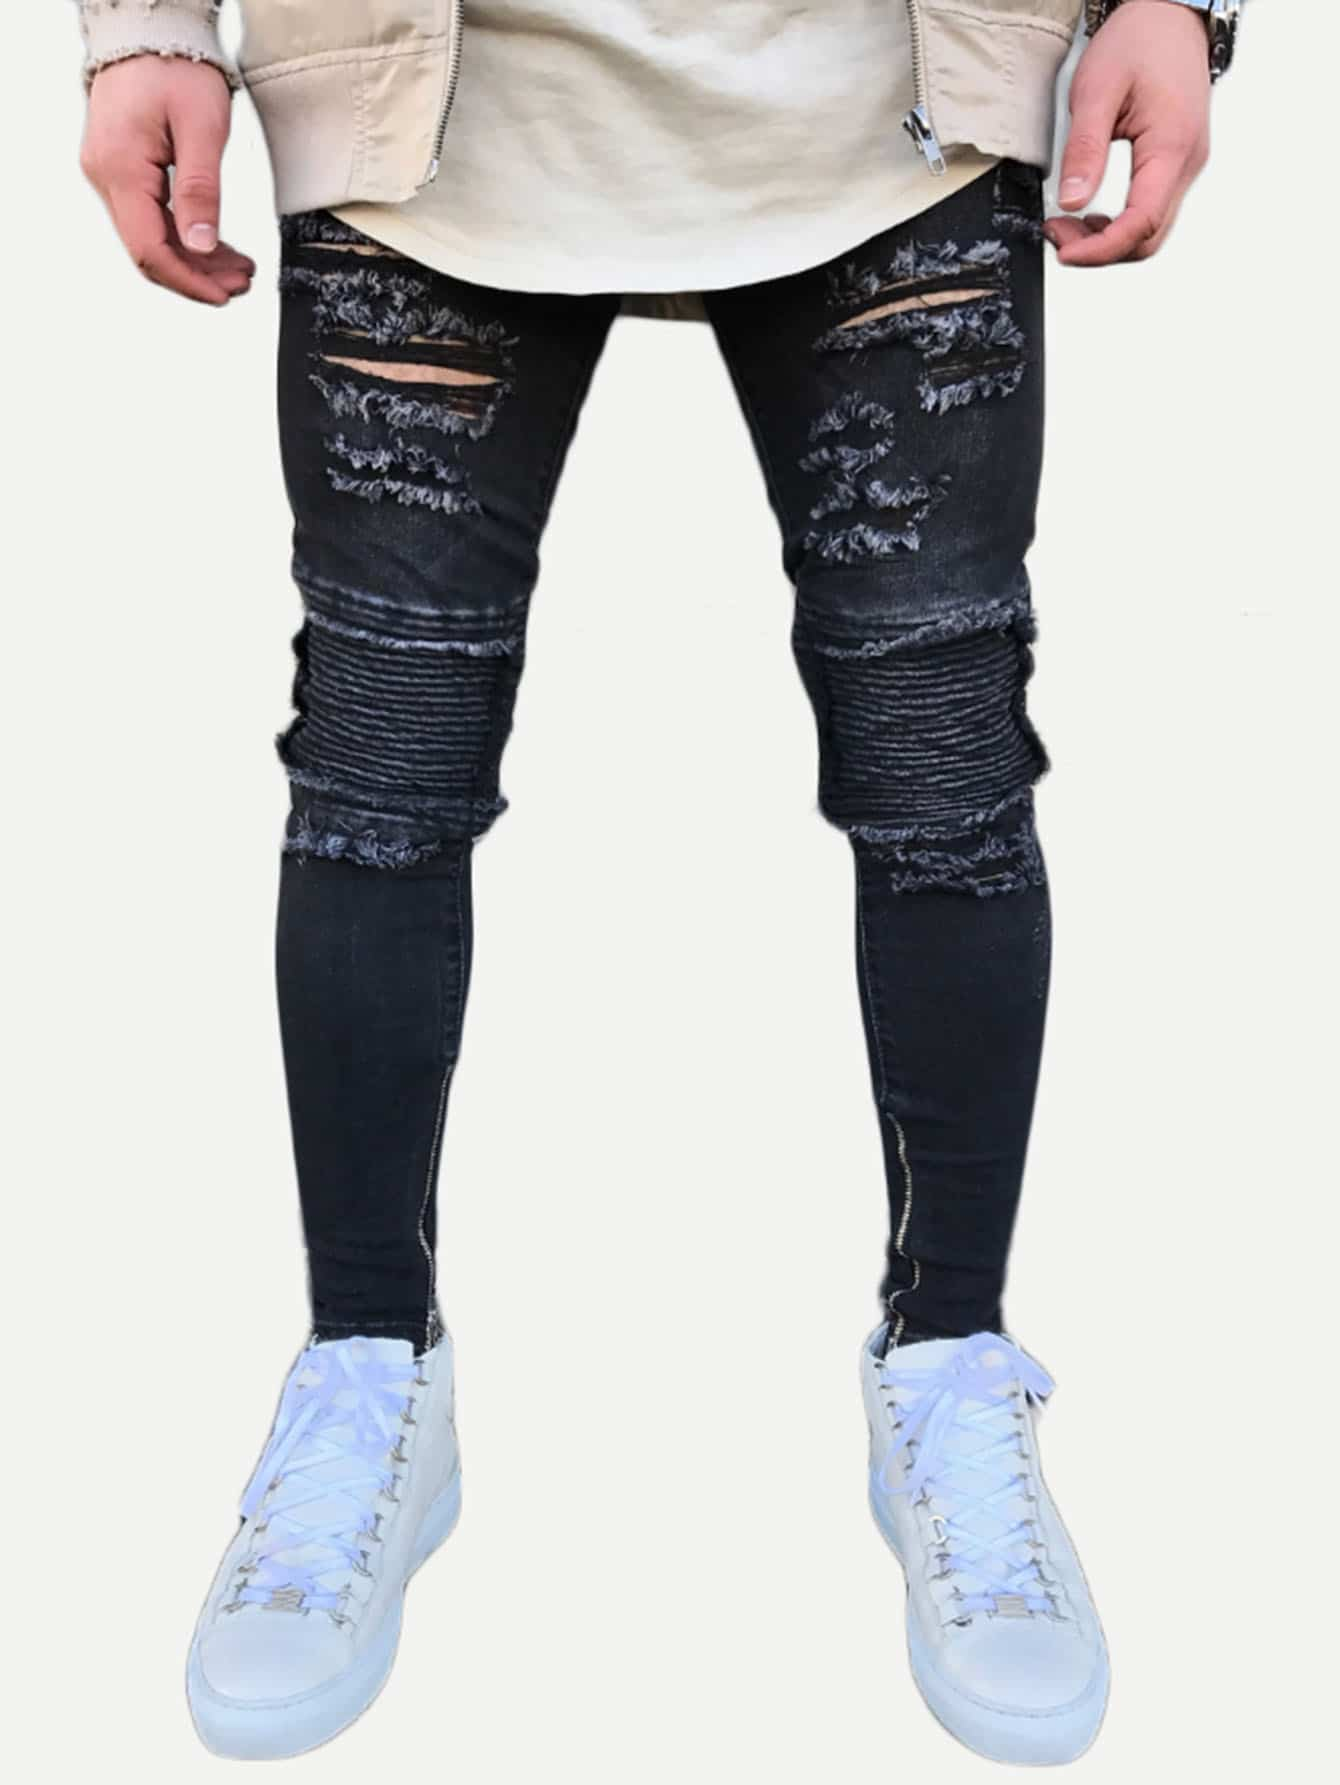 Men Zip Decoration Destroyed Skinny Jeans nostalgia retro design fashion men jeans european stylish dimensional knee frayed hole destroyed ripped jeans men biker jeans